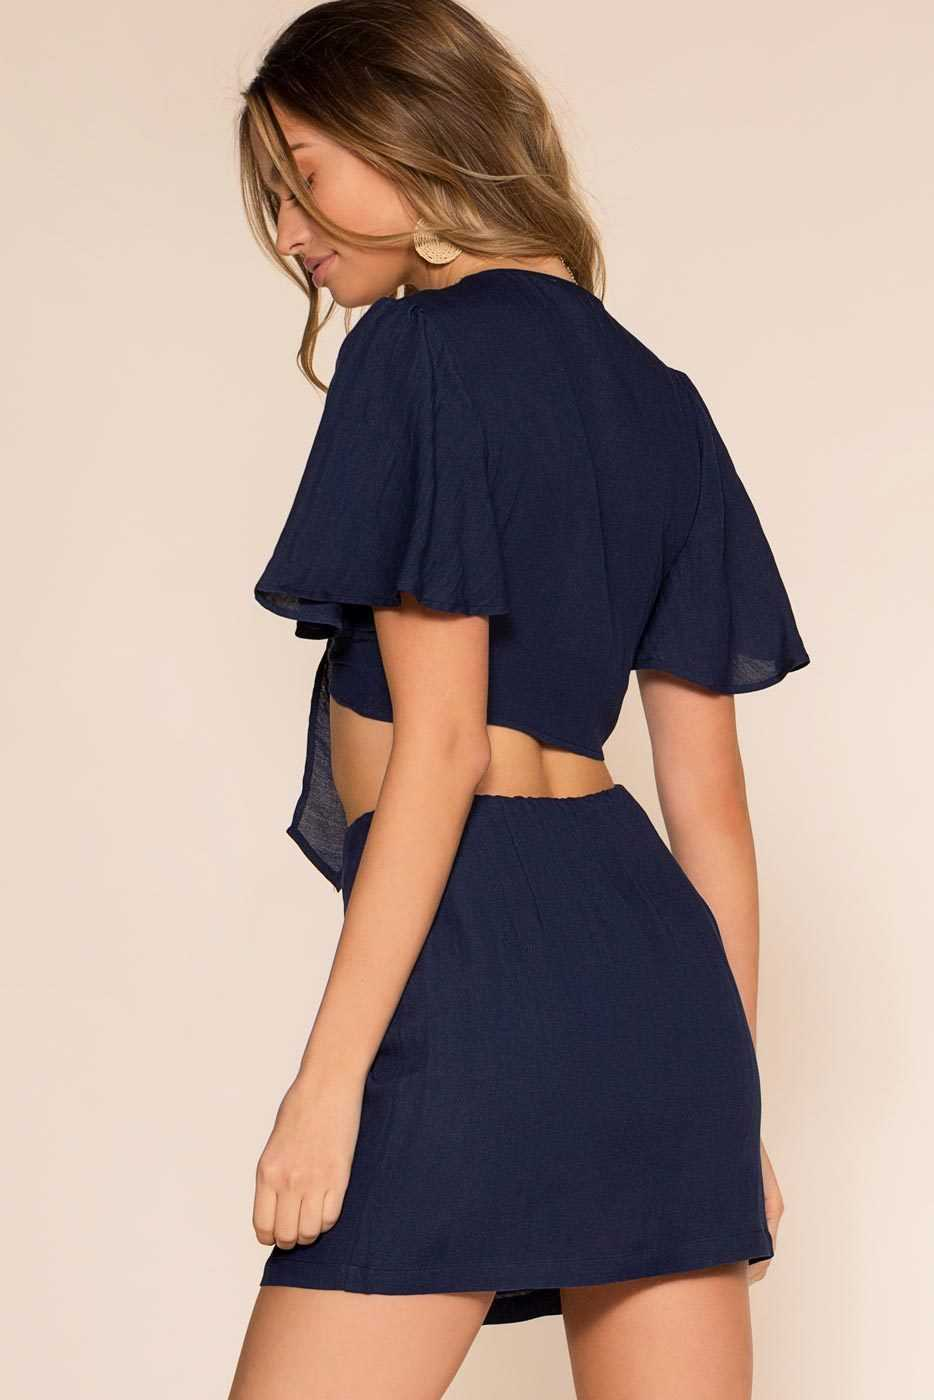 Skirts - Perfectly Put Skirt - Navy